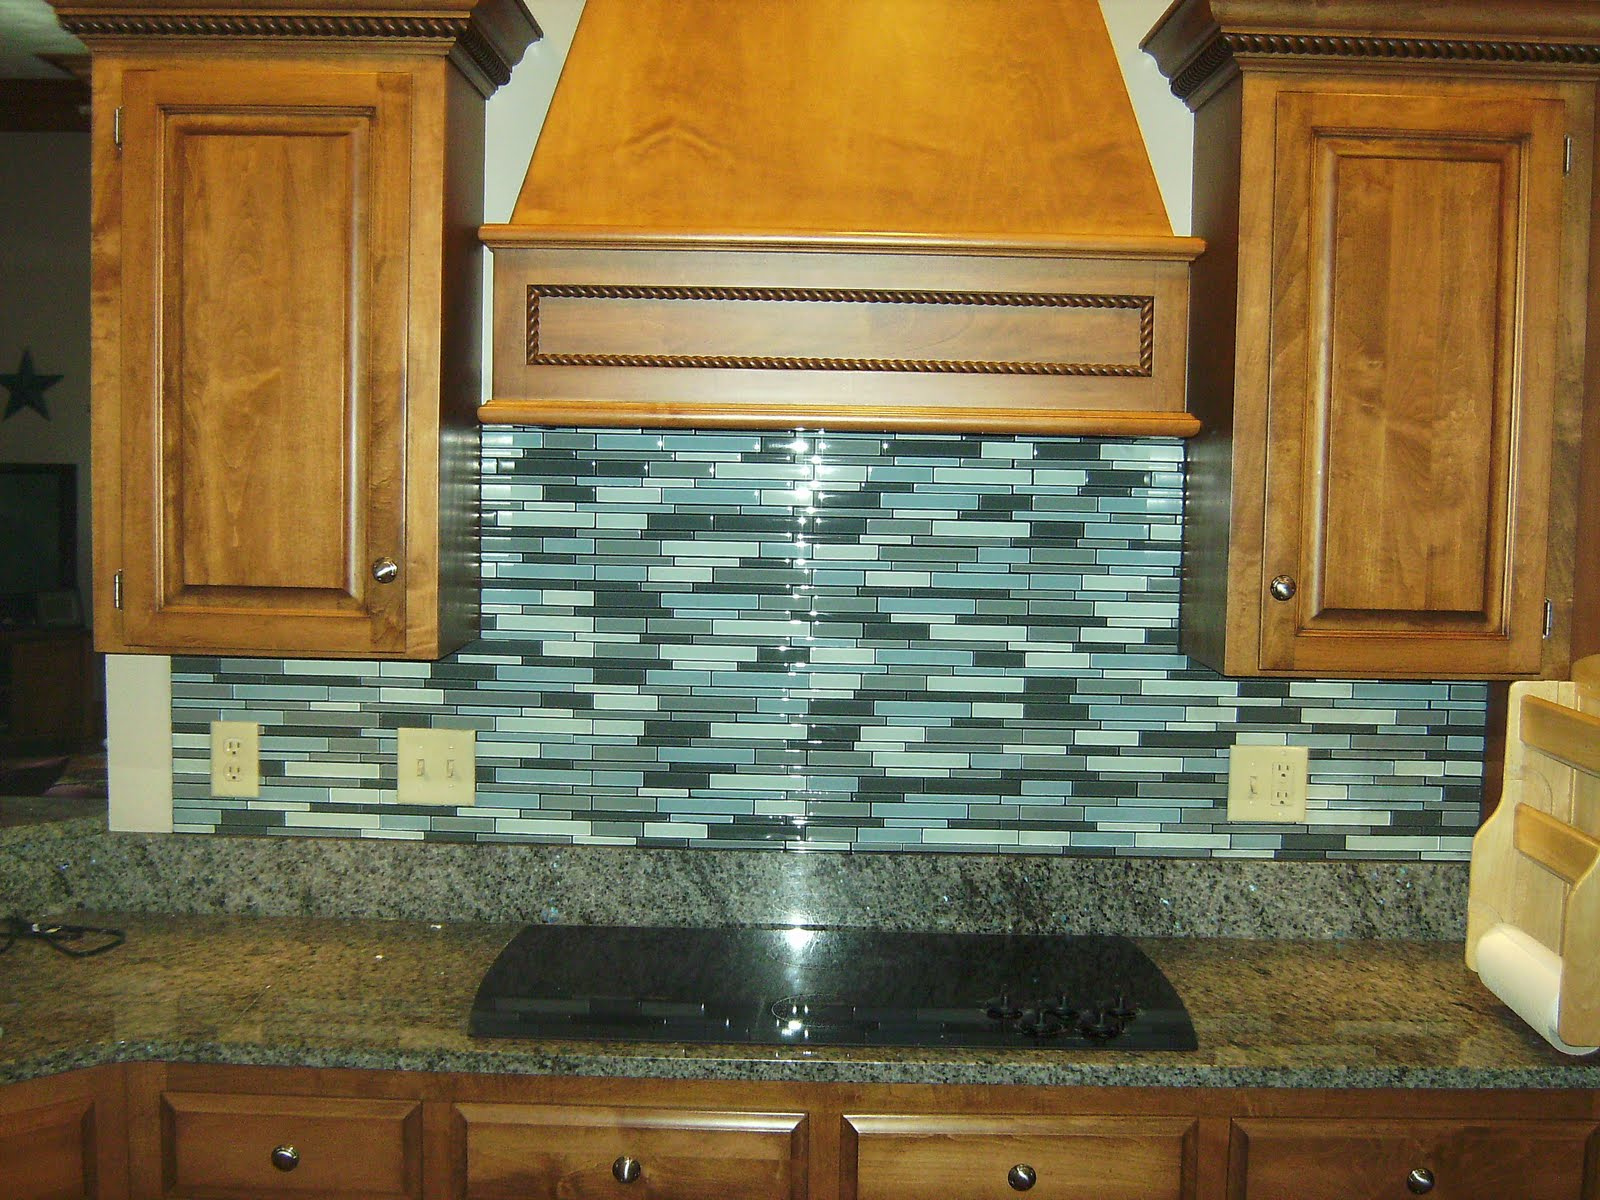 Knapp tile and flooring inc glass tile backsplash for Glass tile kitchen backsplash ideas